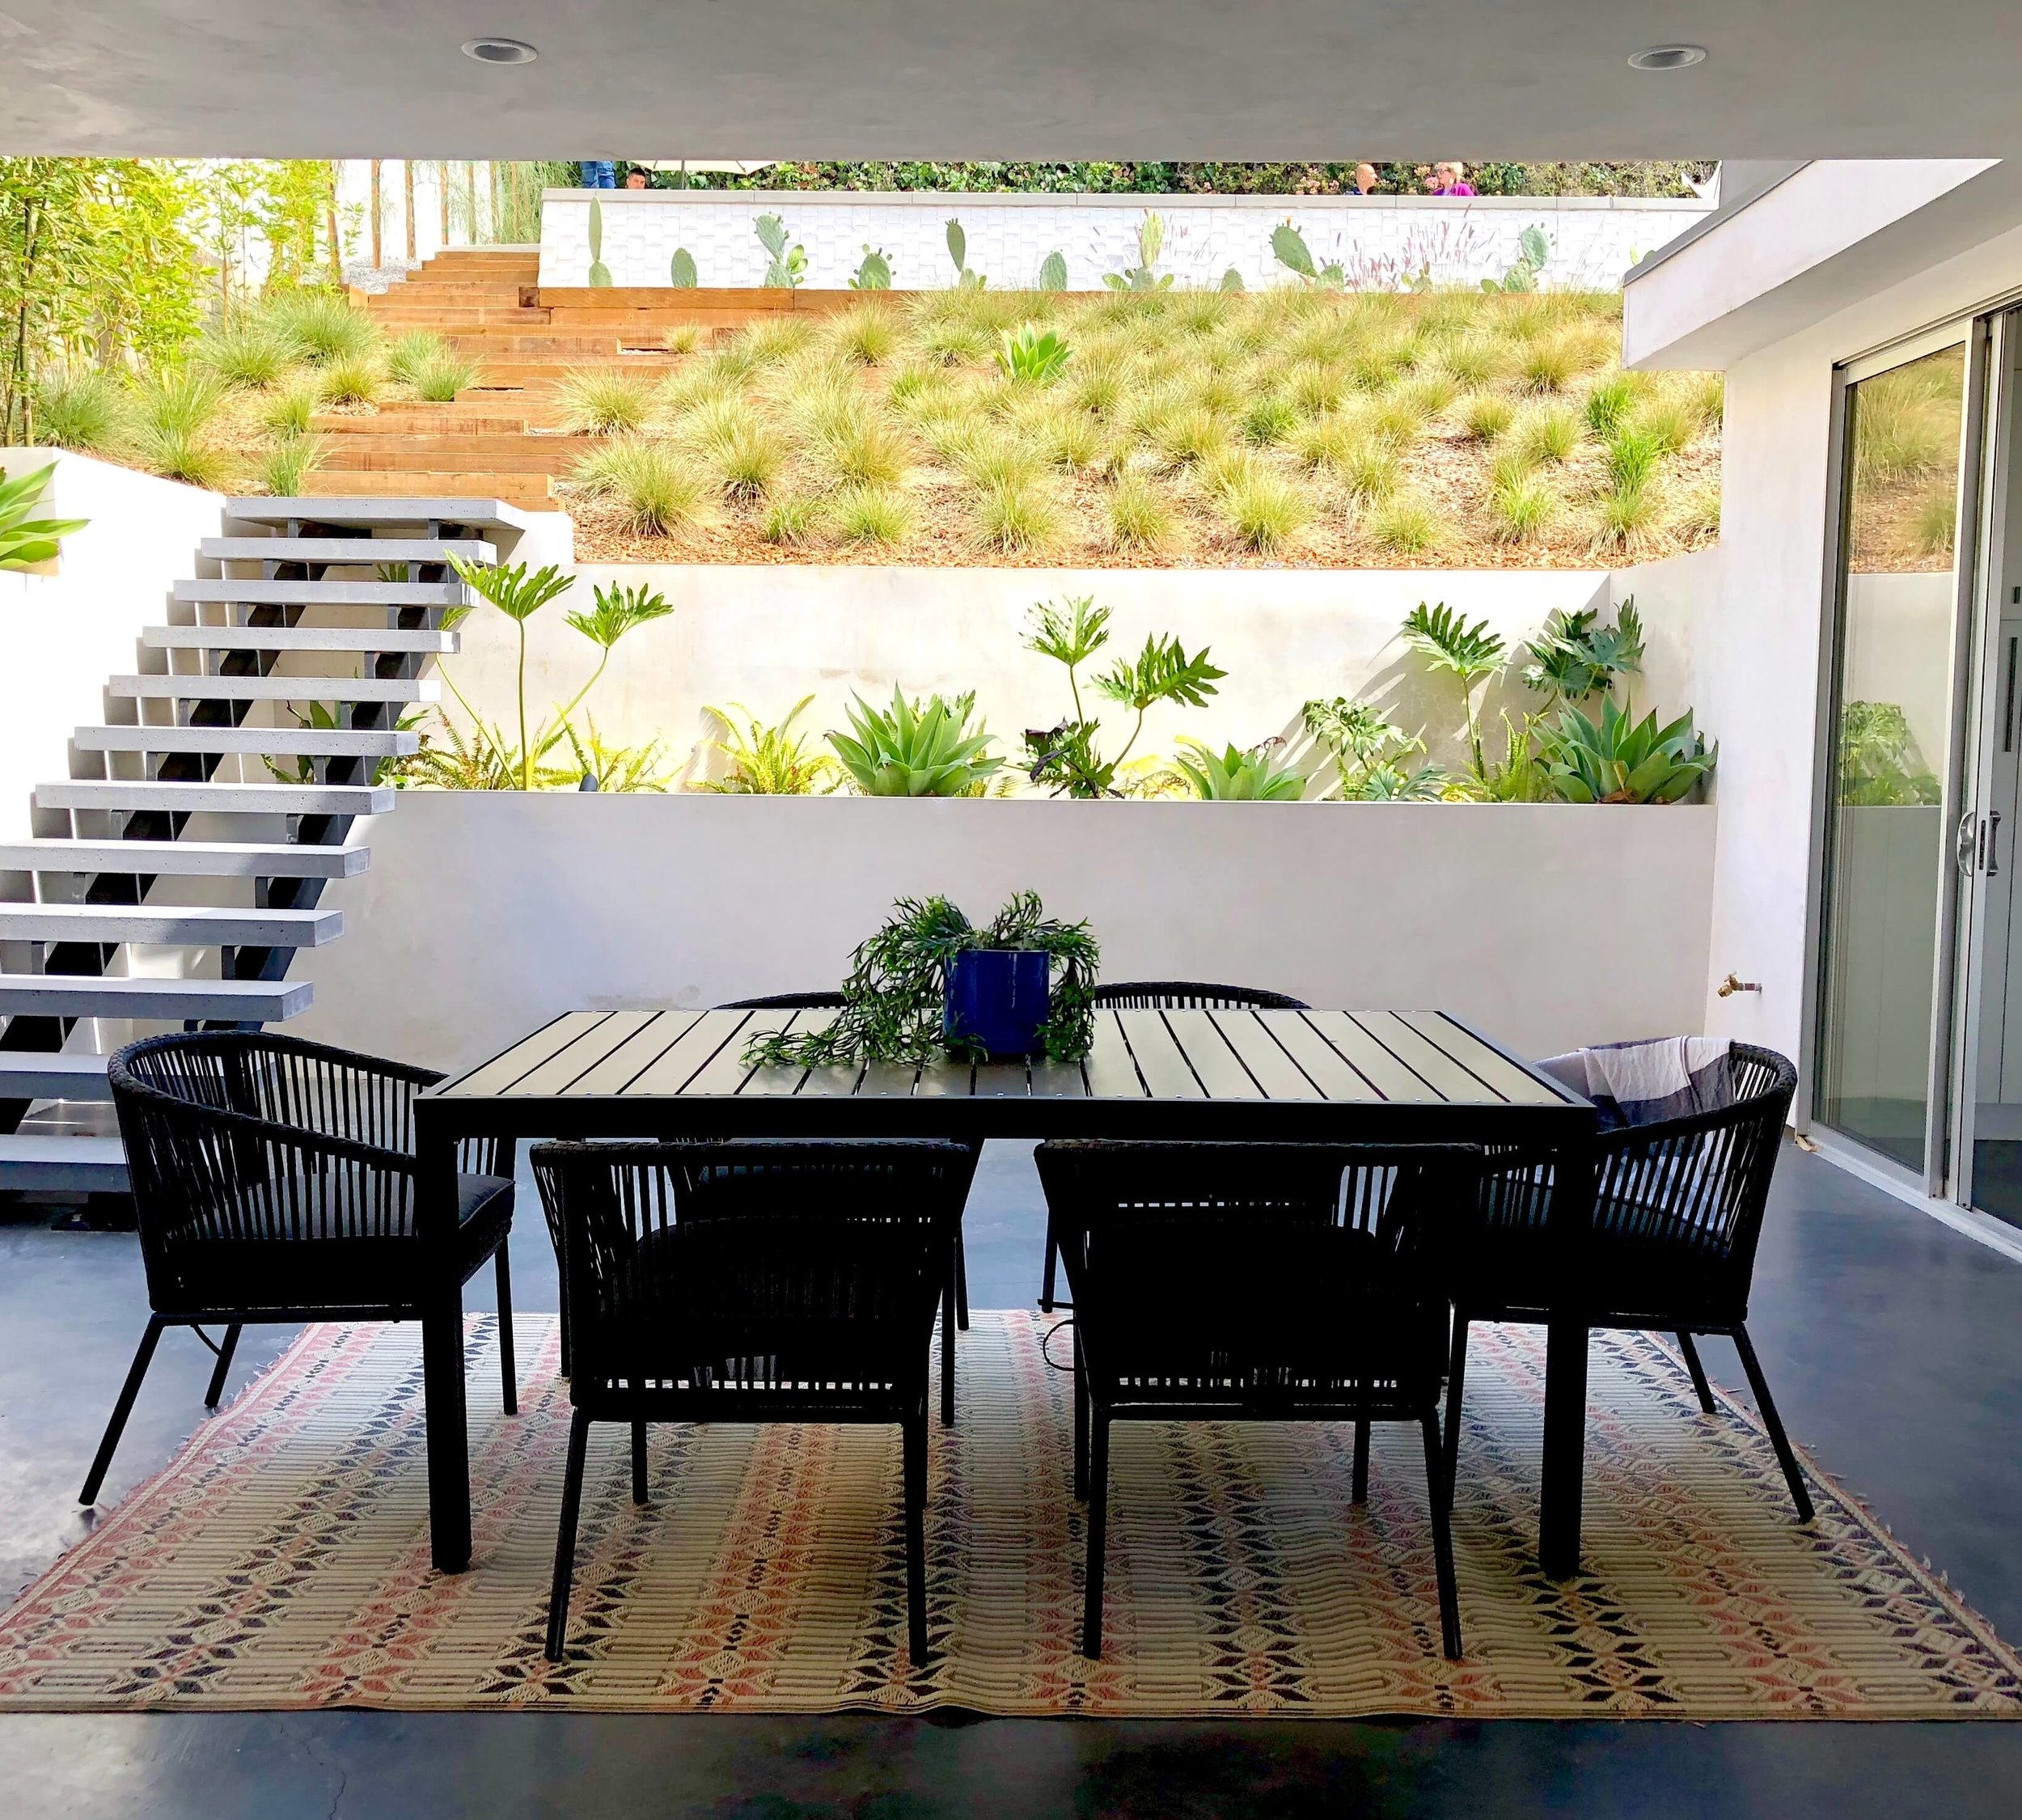 Covered outdoor dining area at Dwell on Design's home tours - Architect,  CHA:COL  #outdoordining #outdoorliving